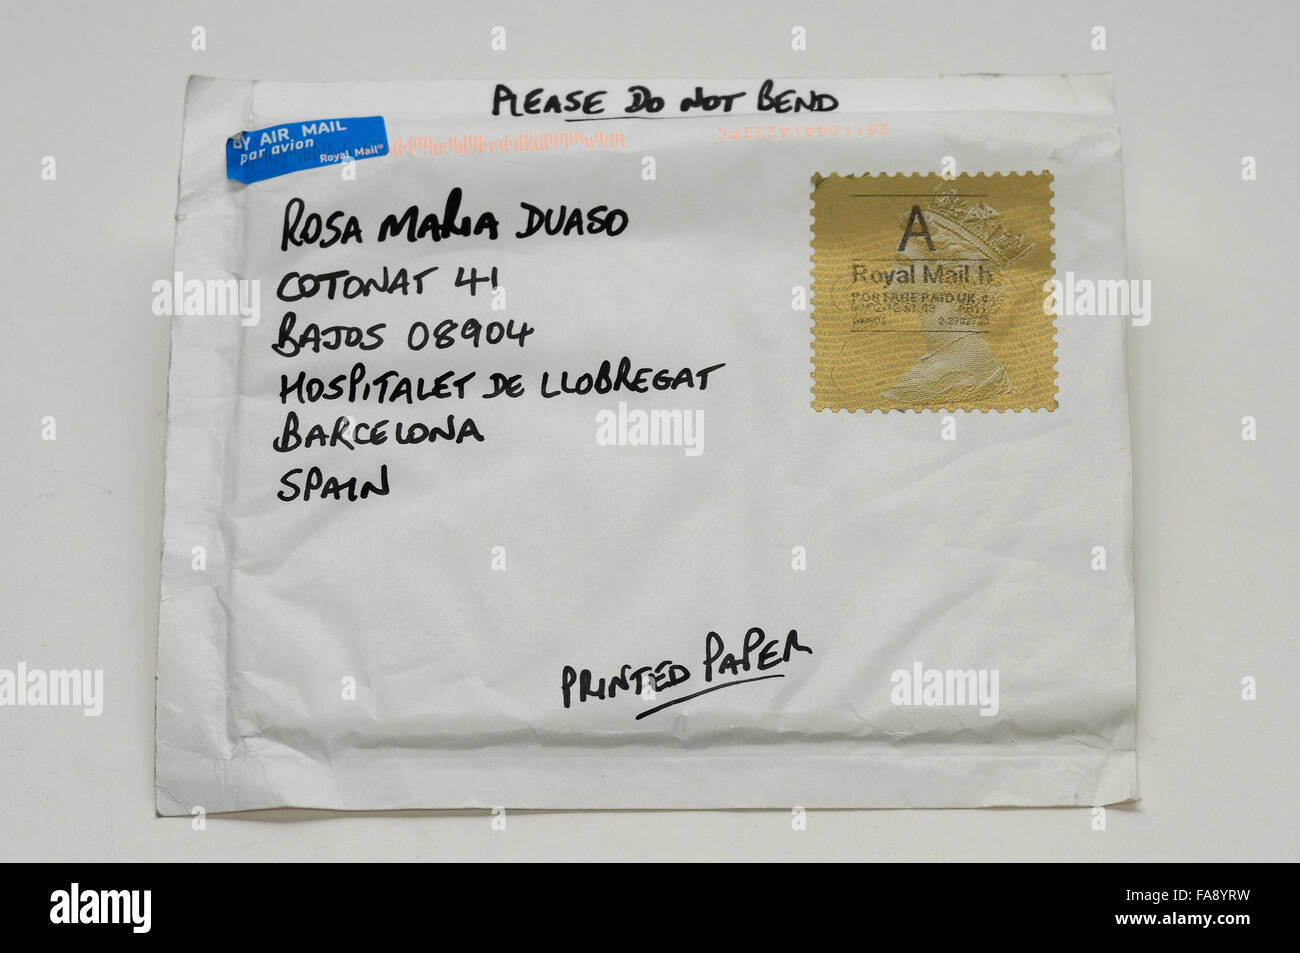 Letters With Stamps Mail By Air